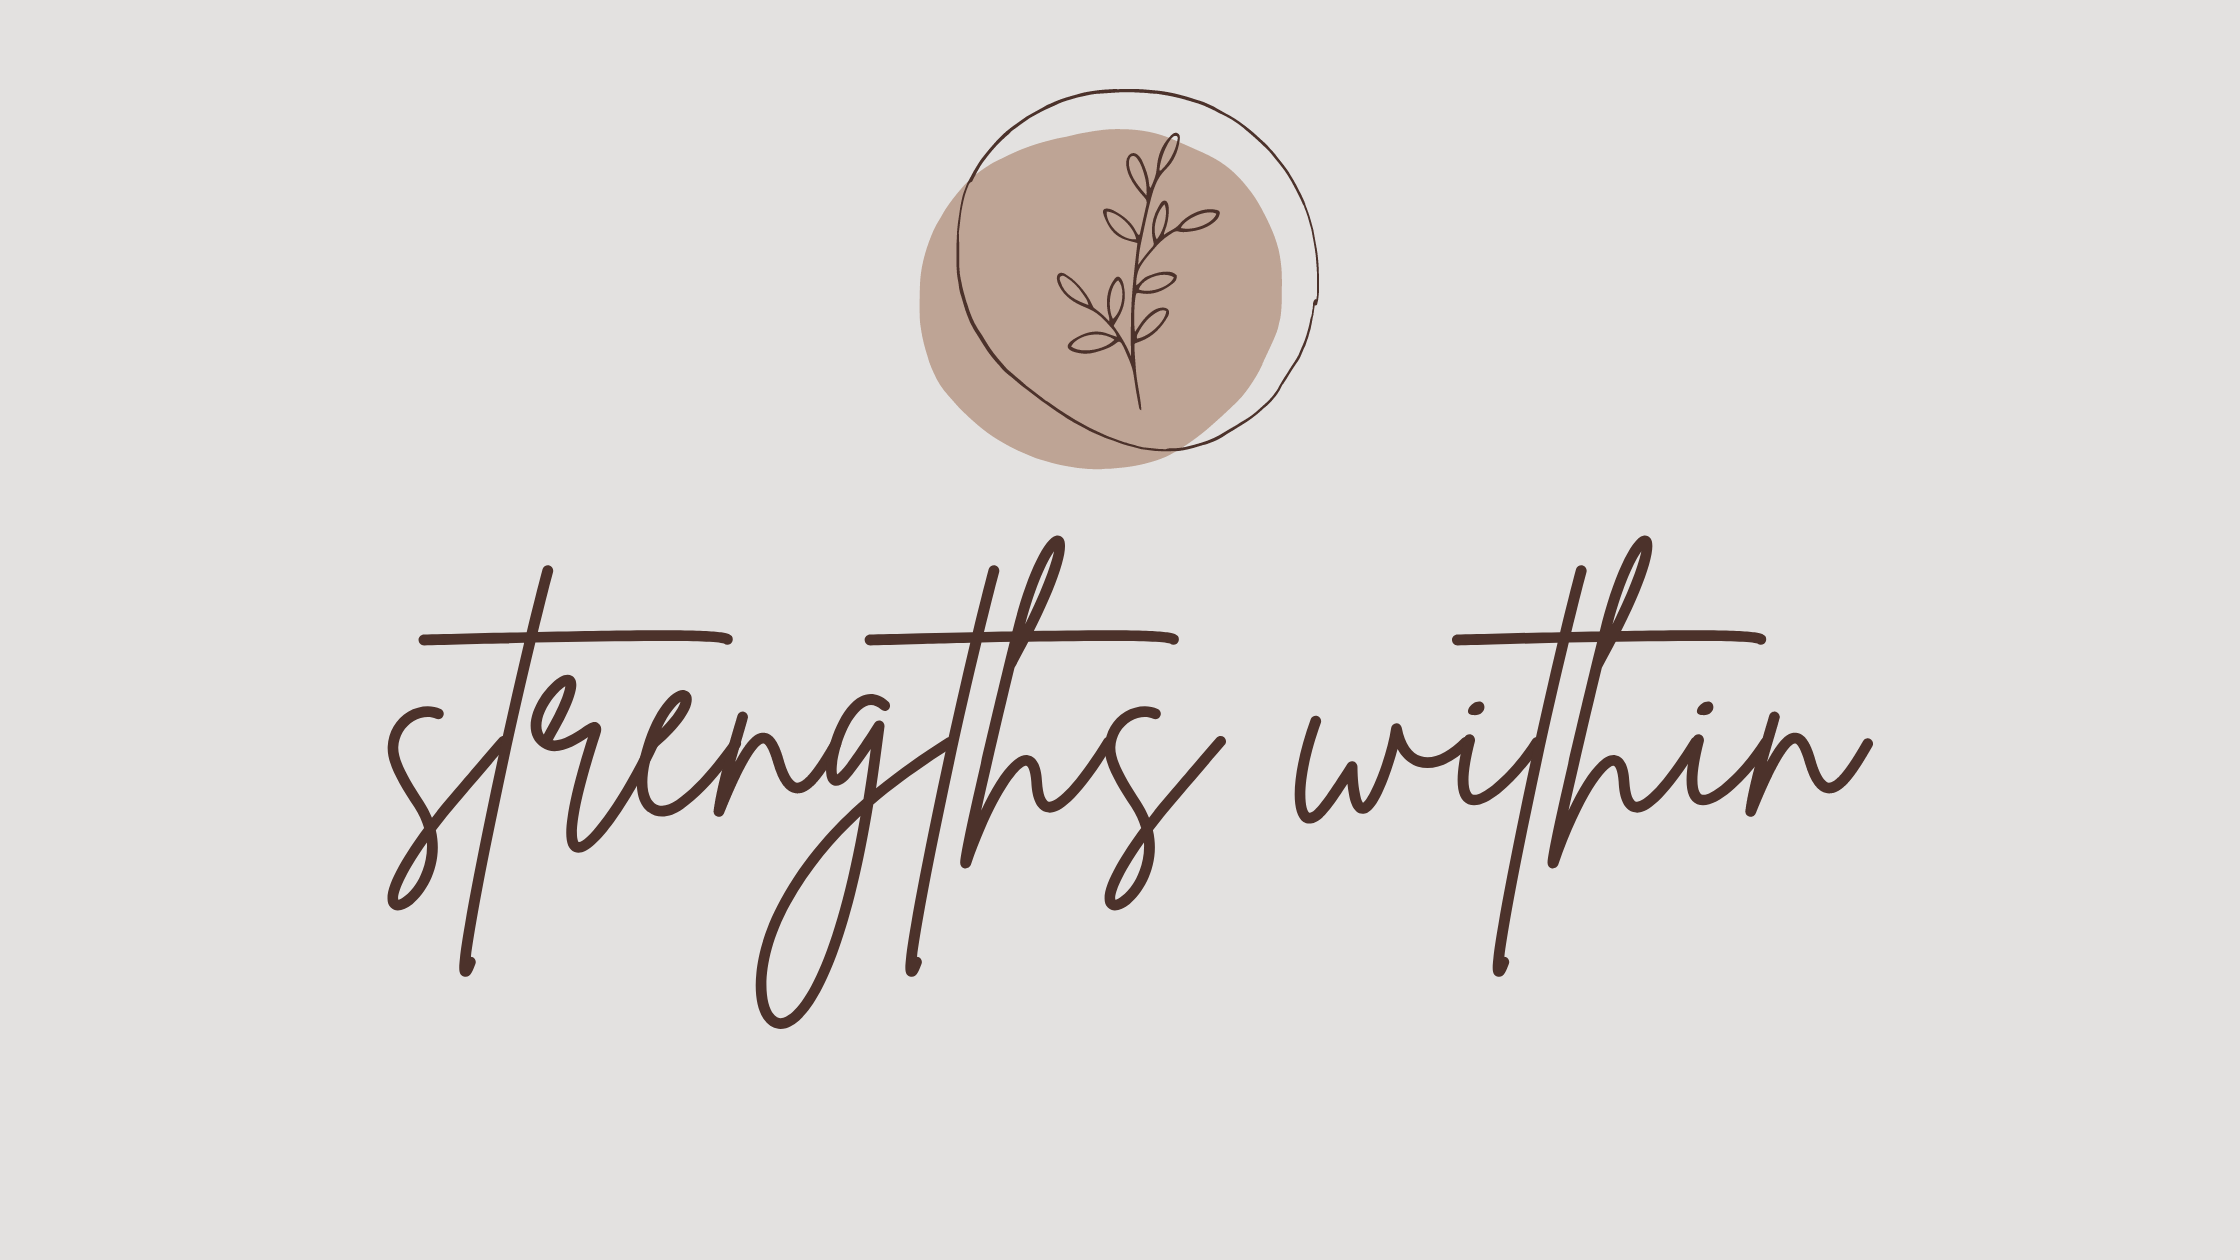 Strengths Within logo, two overlapping earth tone circles, with a sprig of greenery in the centre, on a beige background. The words Strengths Within appear below in a script font.